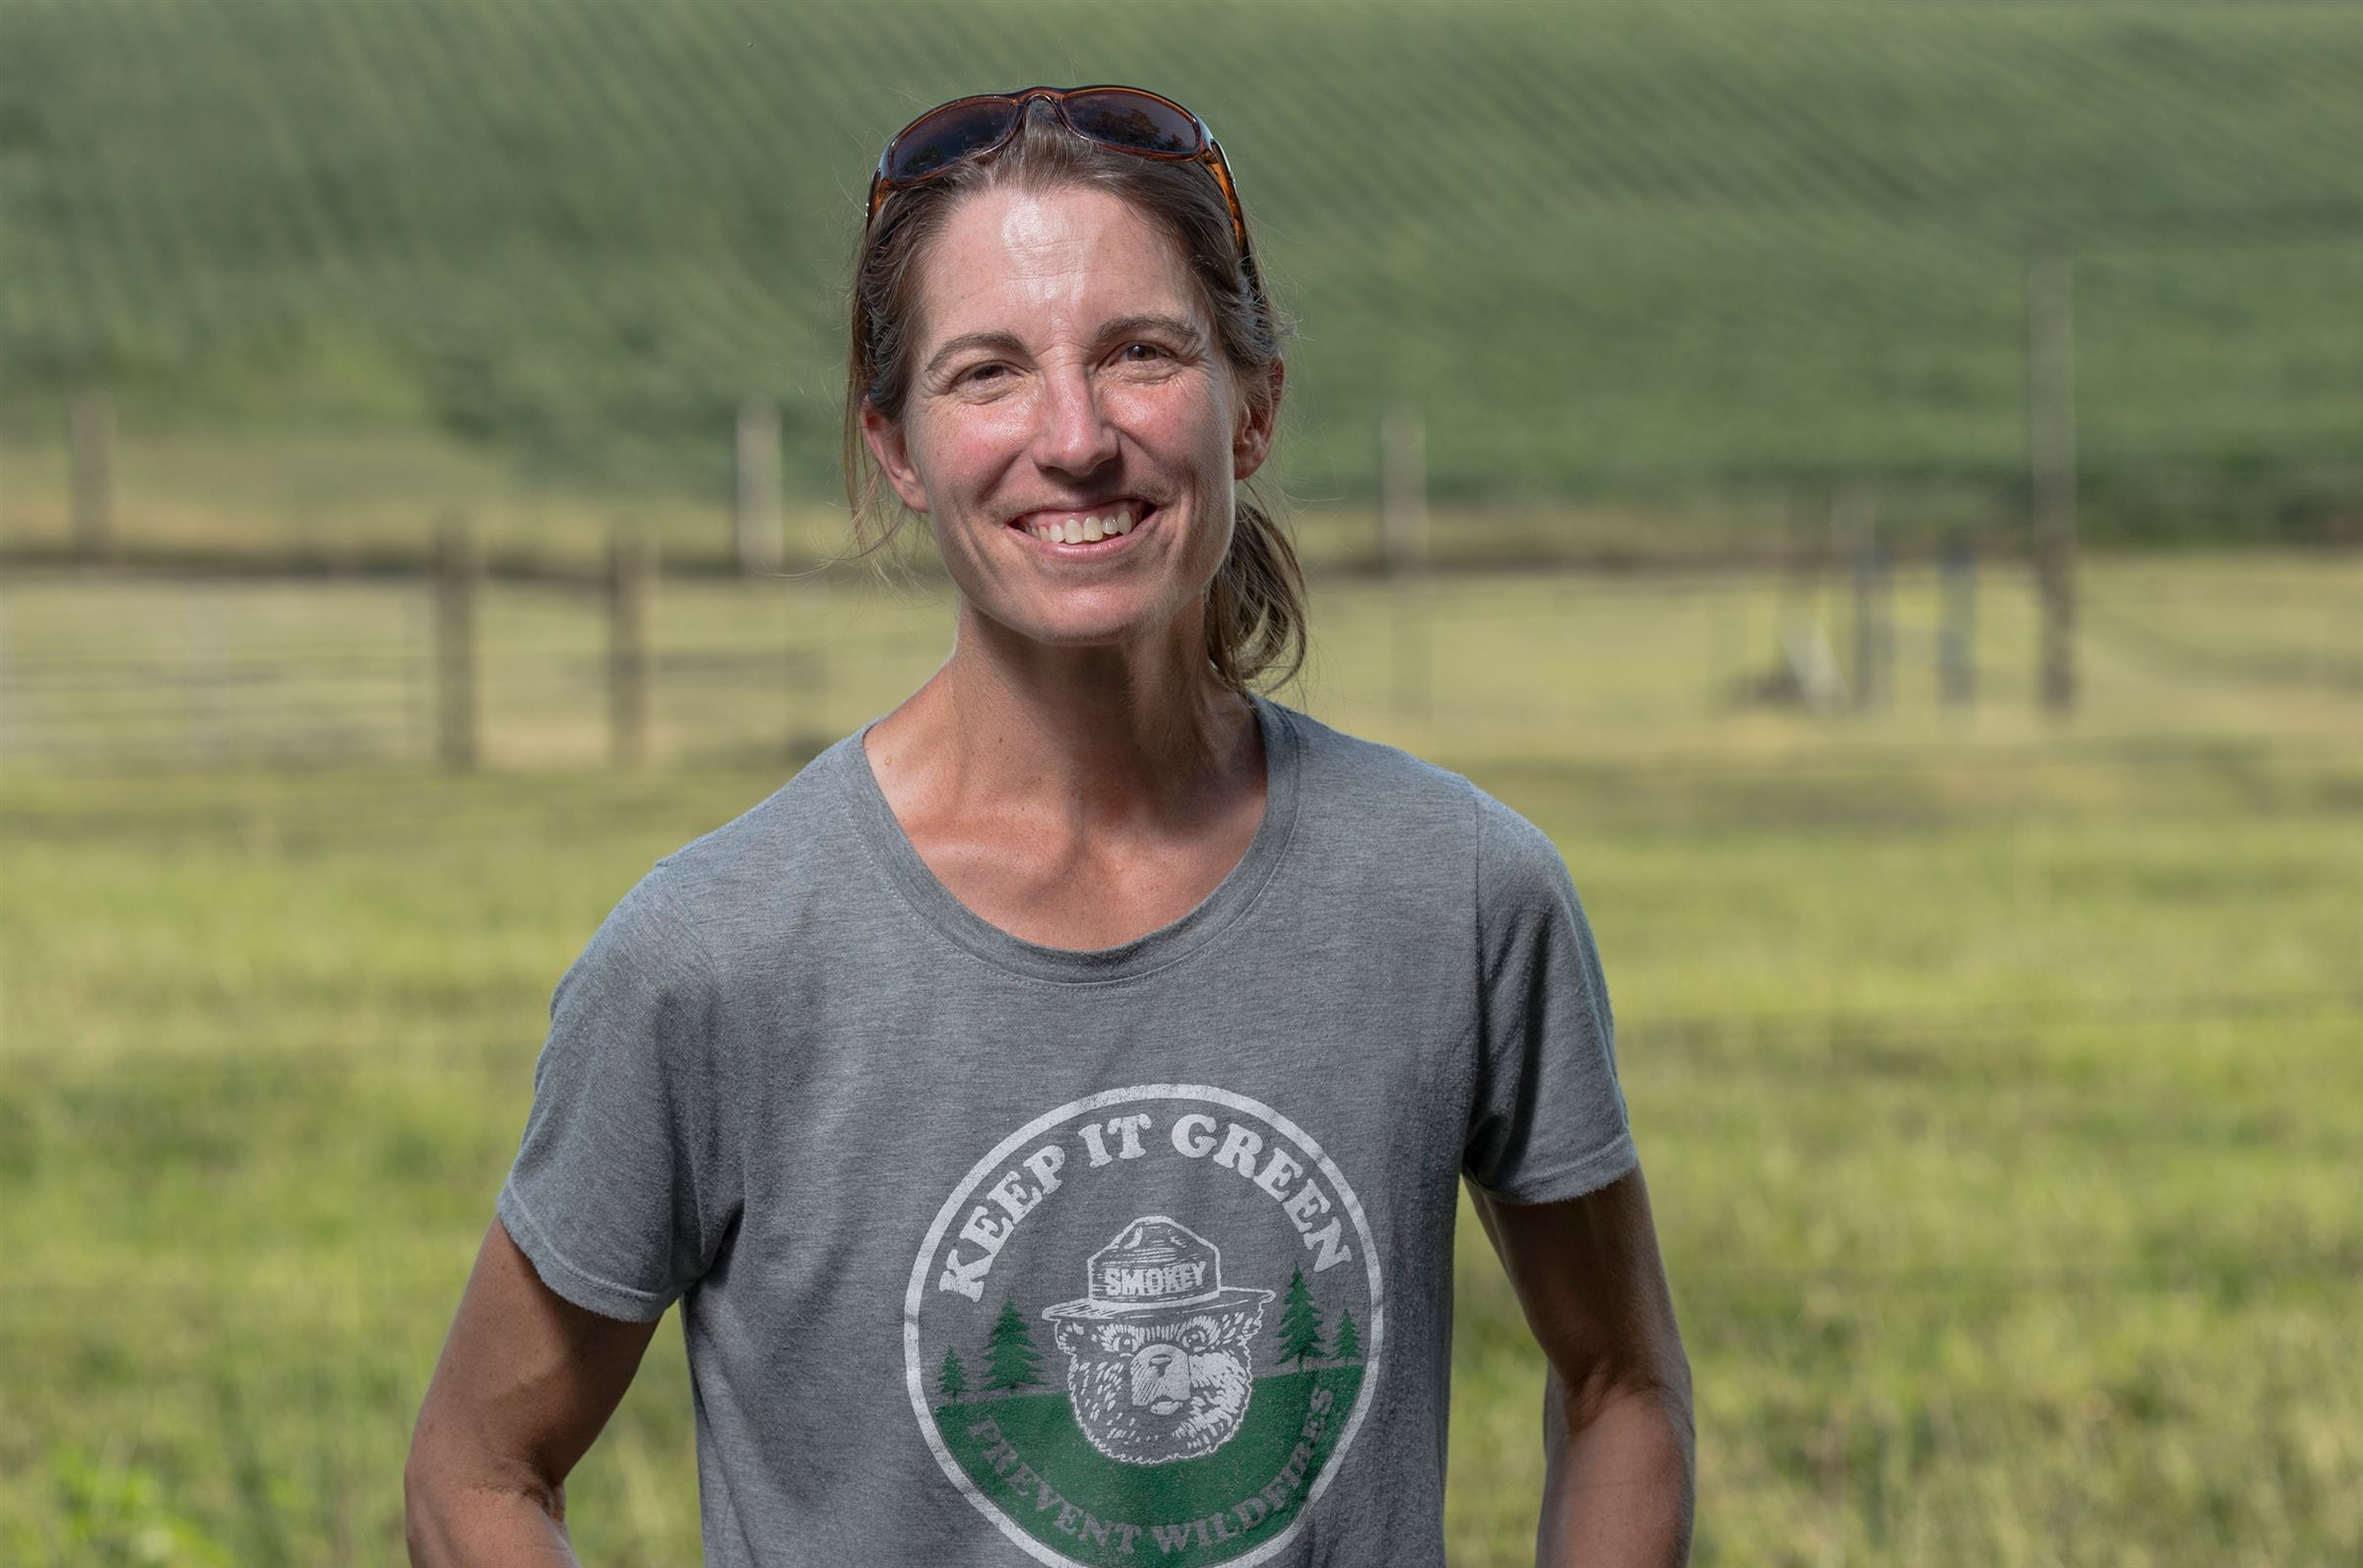 "Jamie Blythe is a fifth generation farmer who has brought sustainability and modern agricultural technology to increase farming yields while also improving environmental impact on the 3,800-acre family farm. <br> <br><a class=""button"" href=""https://www.hutchisonschool.org/page/alumnae-news-detail?pk=1058955"">Read Her Story</a>"